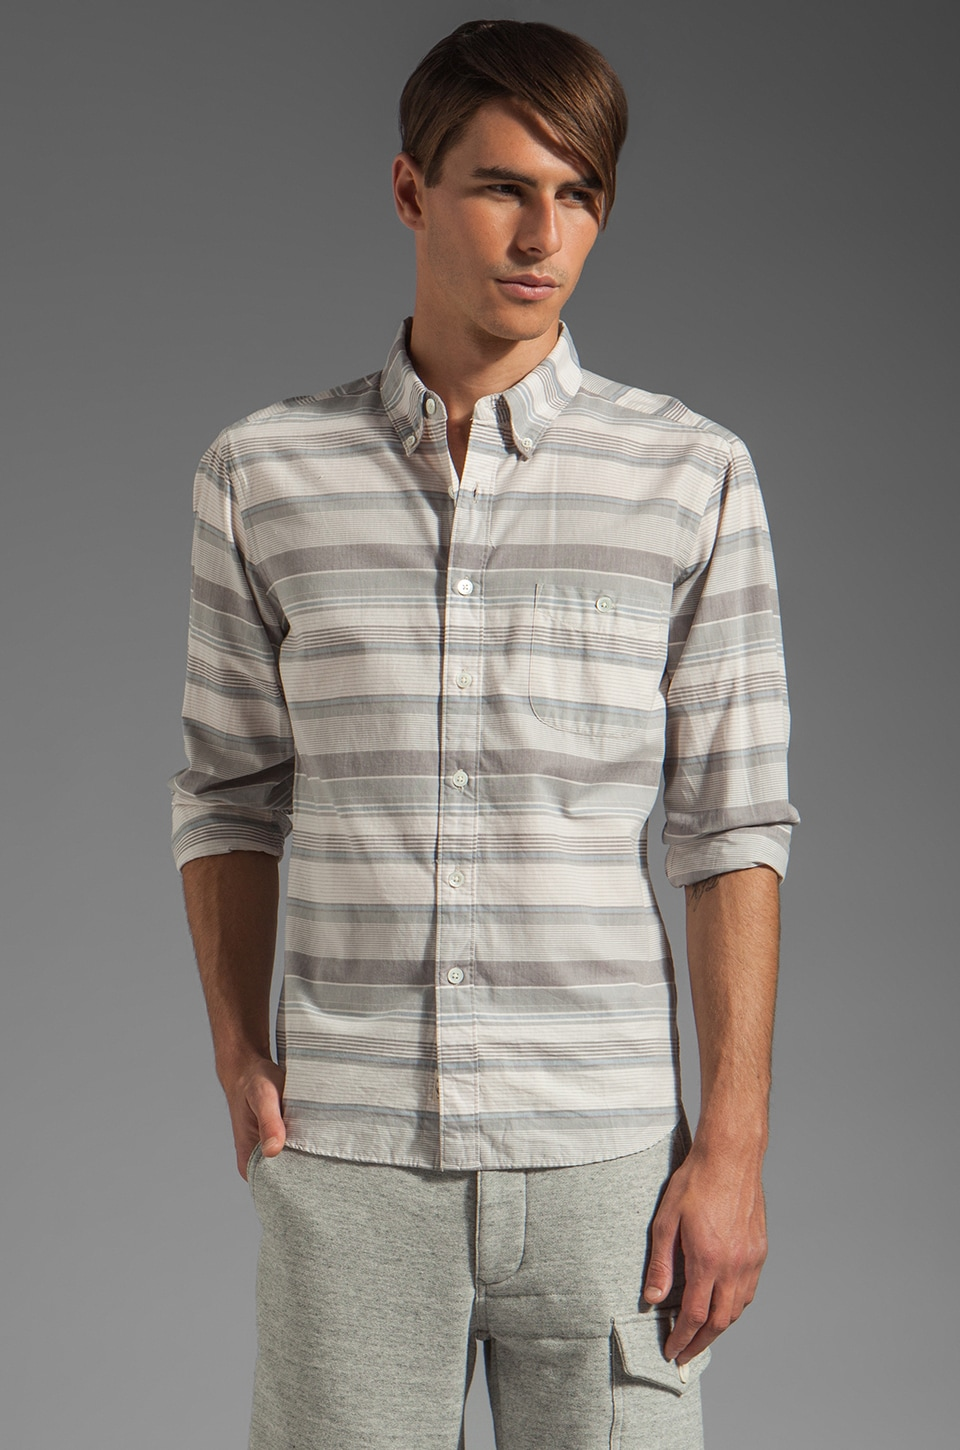 TODD SNYDER Varigated Horizontal Stripe Shirt in Blue